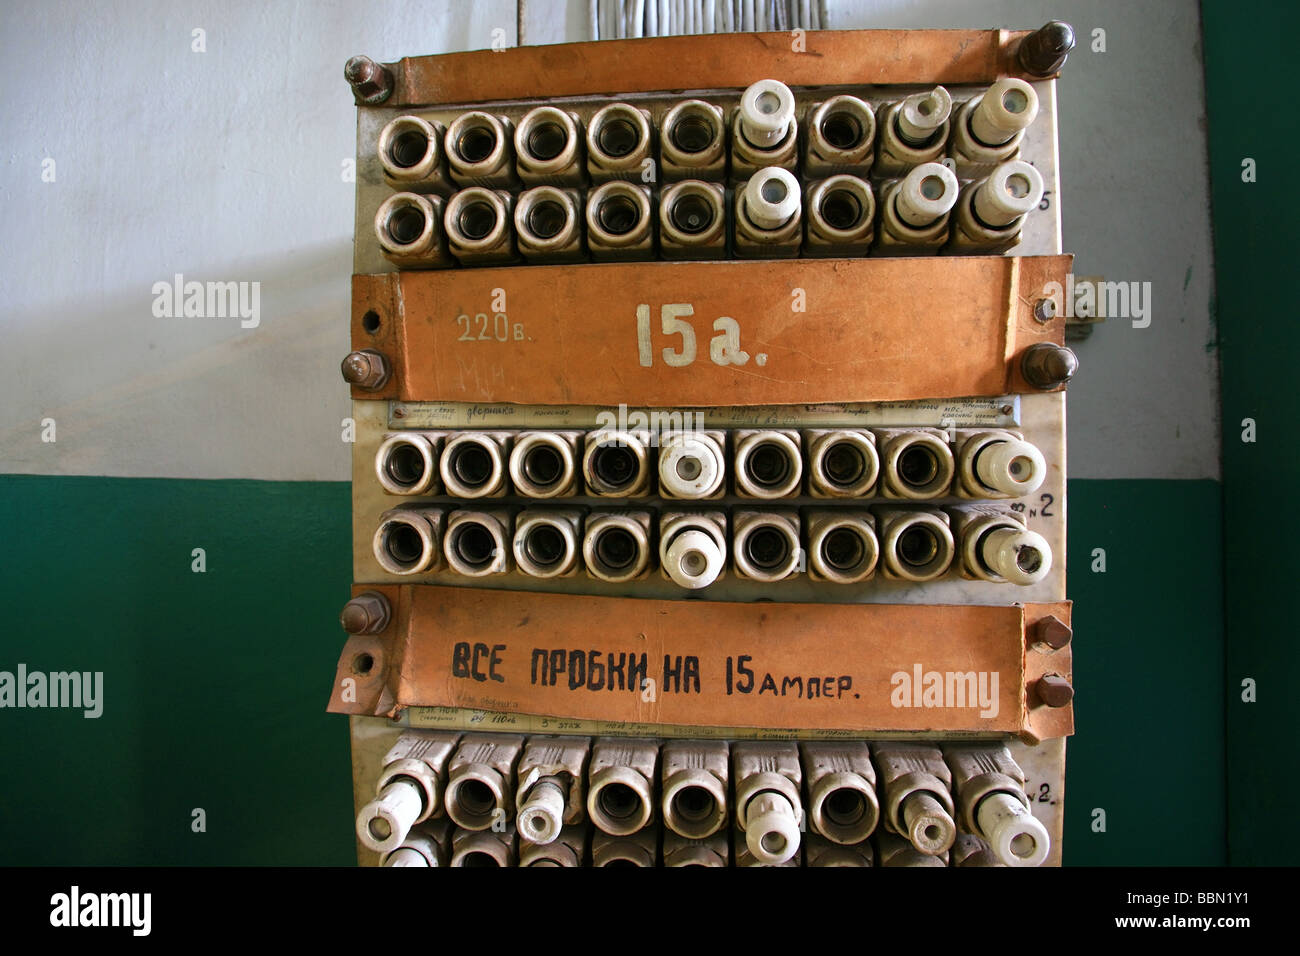 Old Fuses Fuse Box Stock Photos Images Used Car In A Image